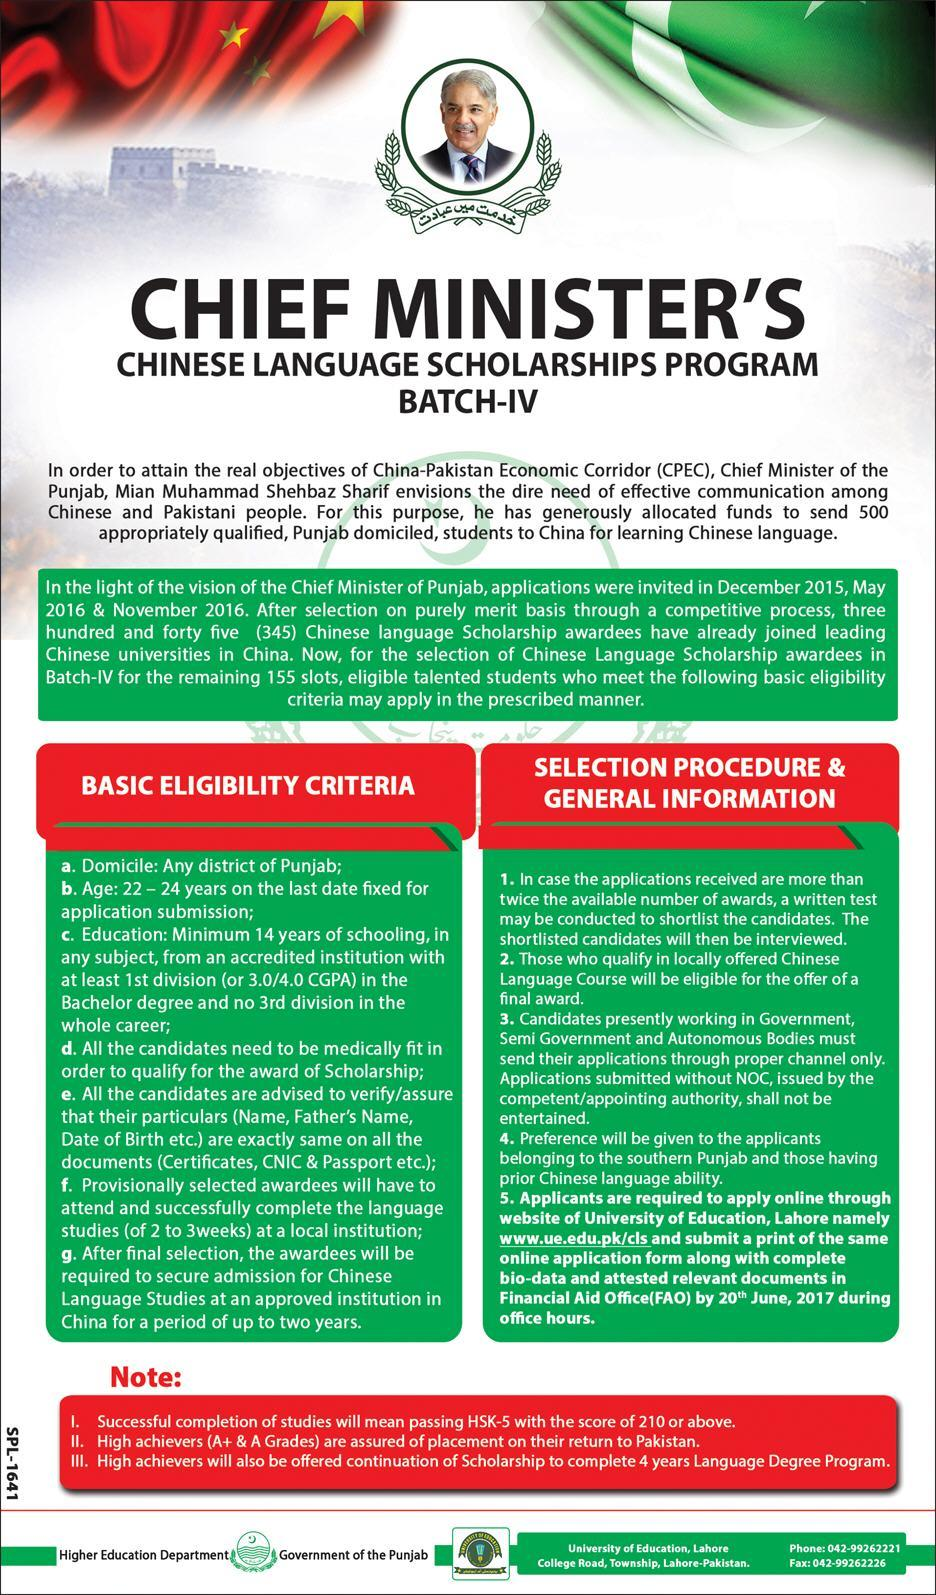 Chinese Language Scholarships Program Criteria